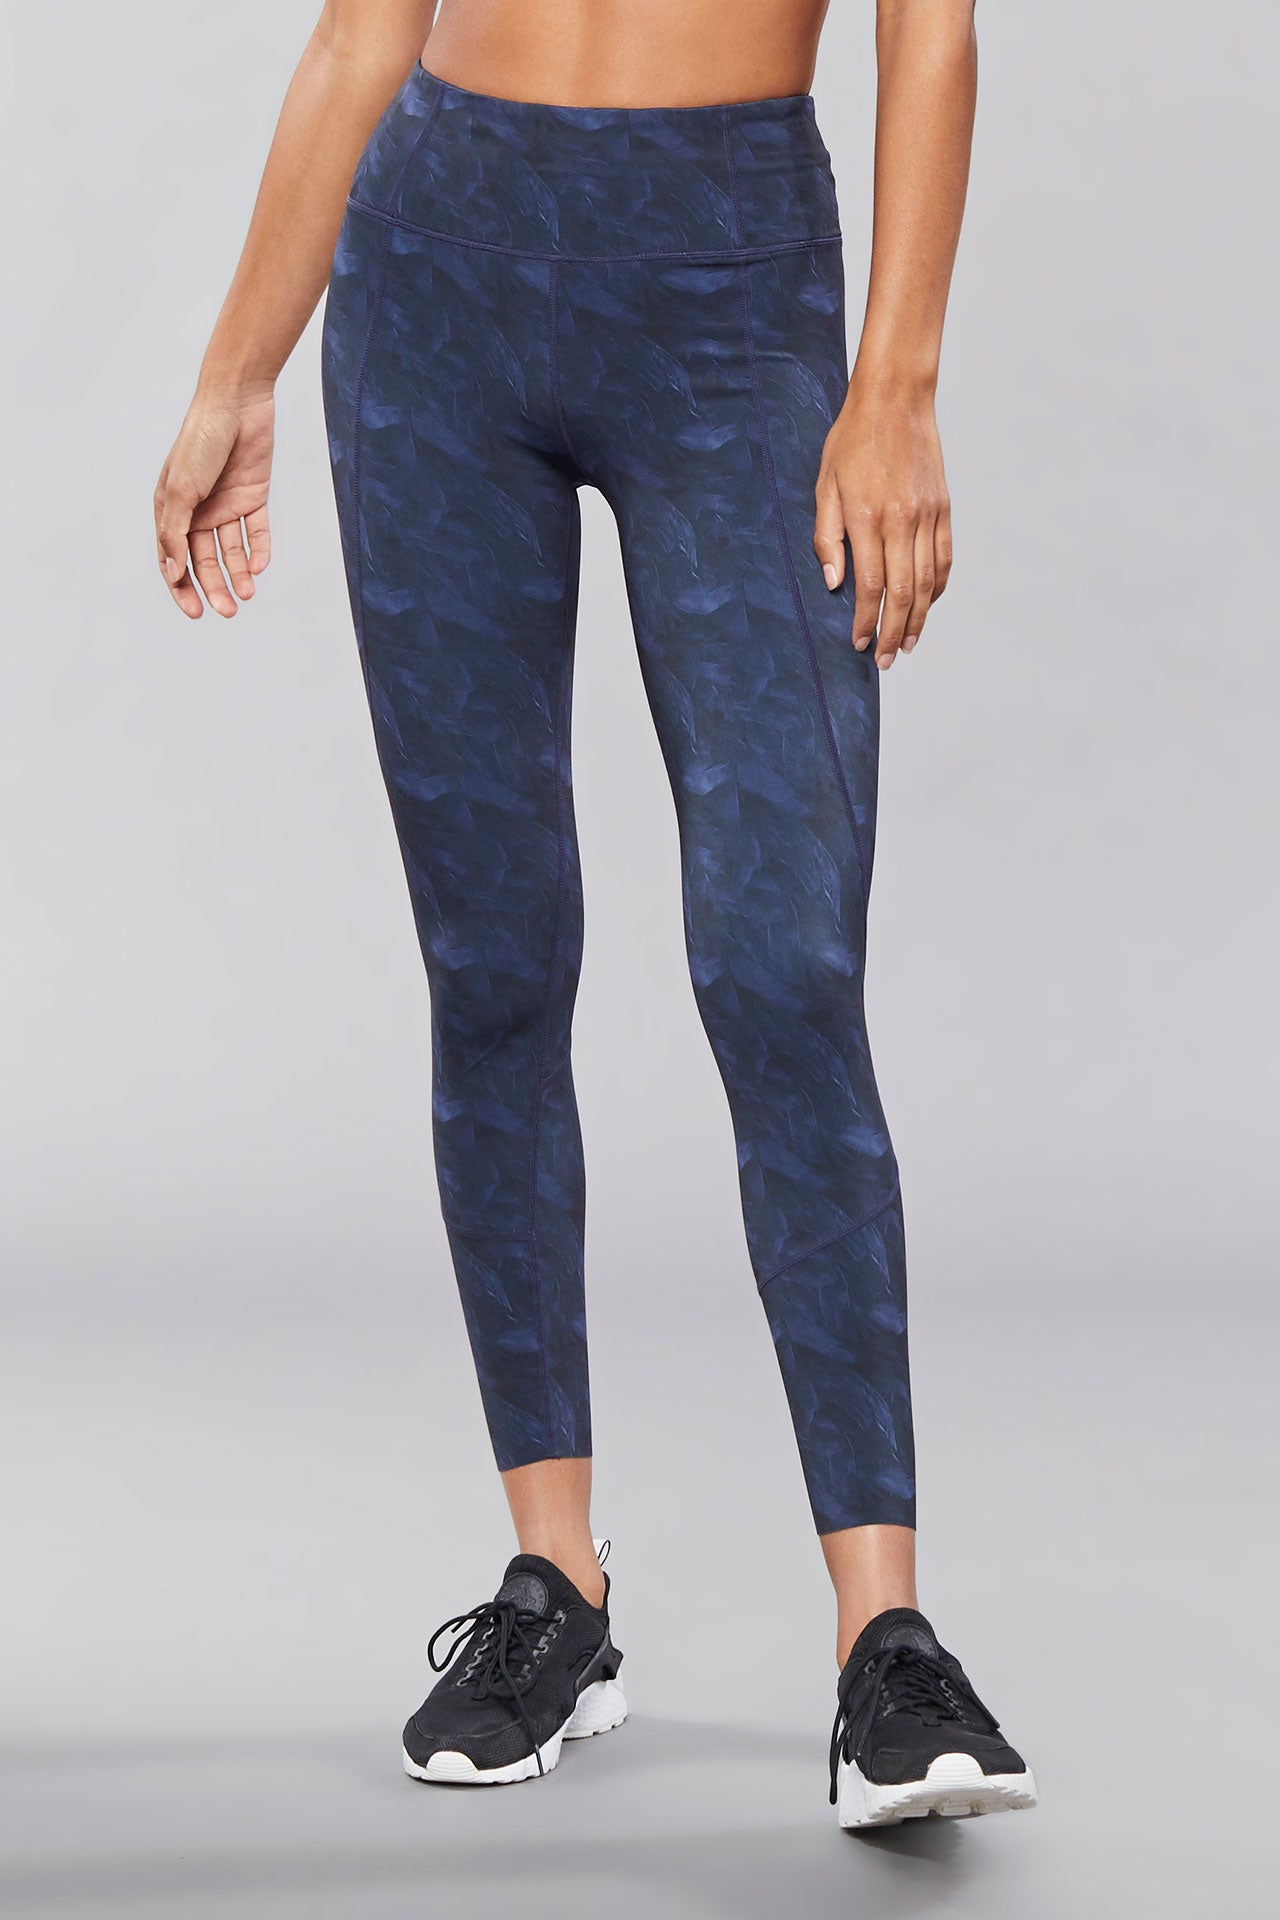 Varley Bedford Tight - Navy Feathers - Sculptique